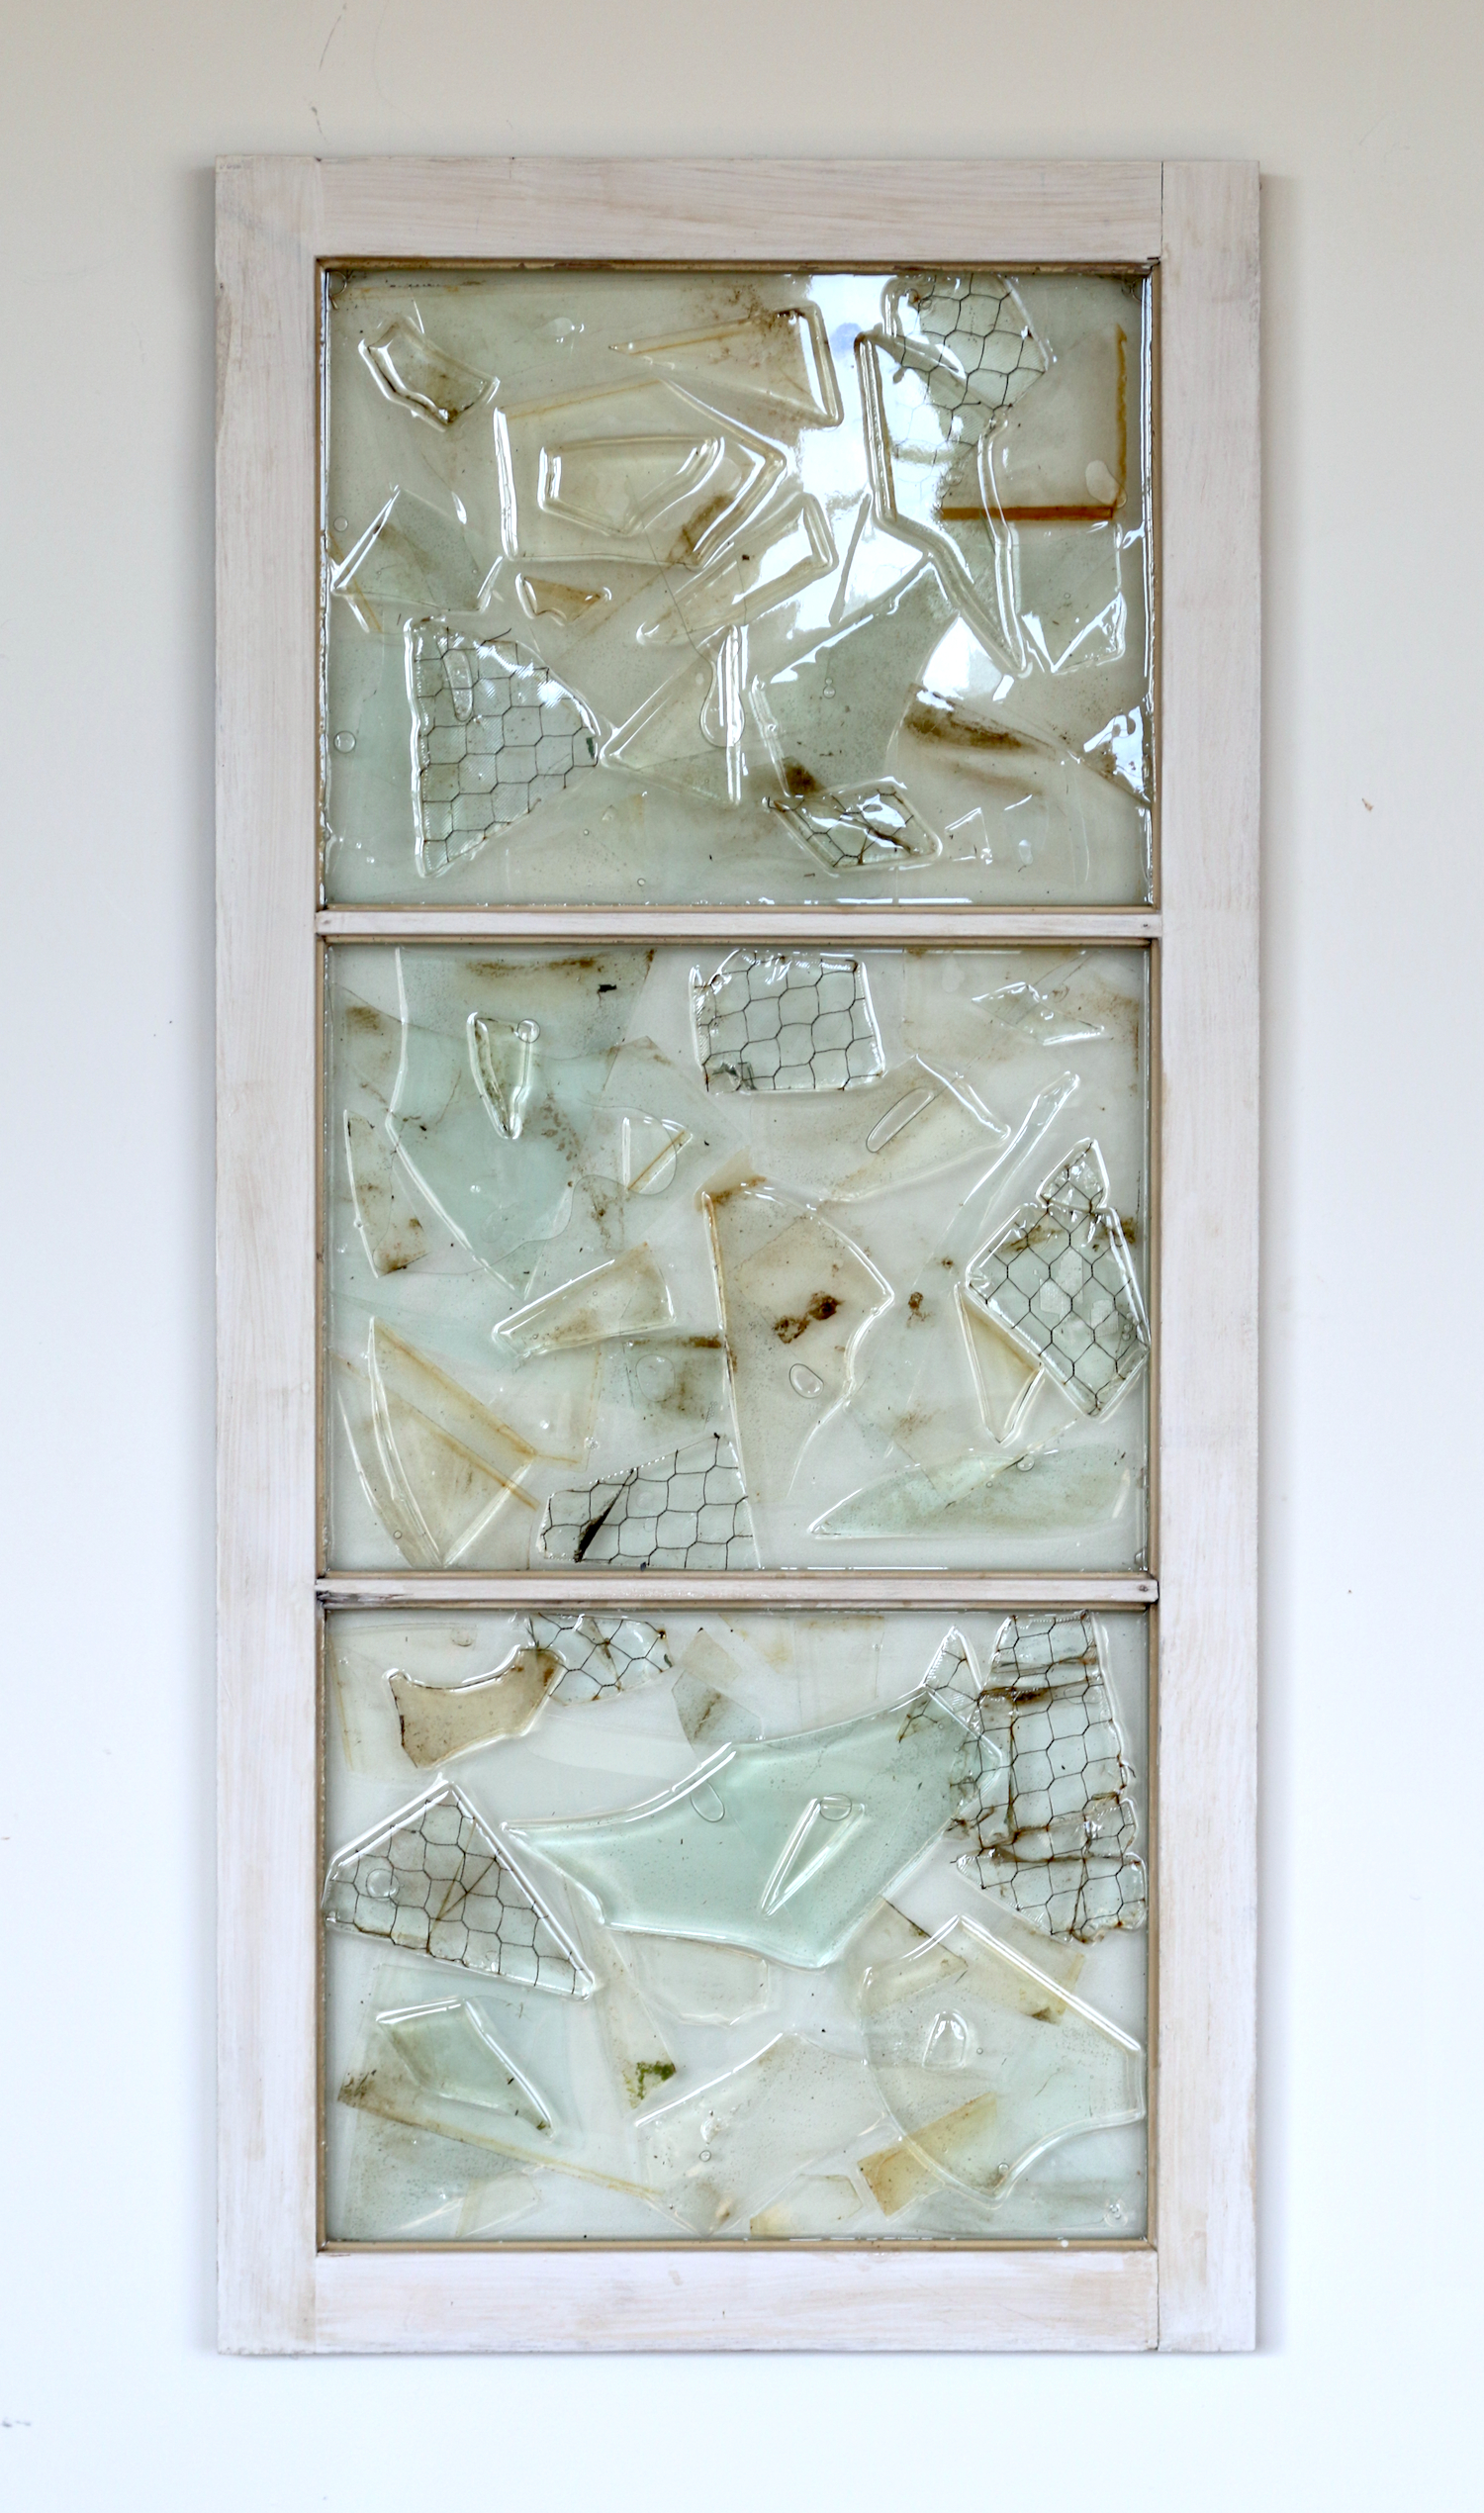 "Clarity is a State of Mind , window, broken glass, resin, 20x45"", 2015, Price: $1000."